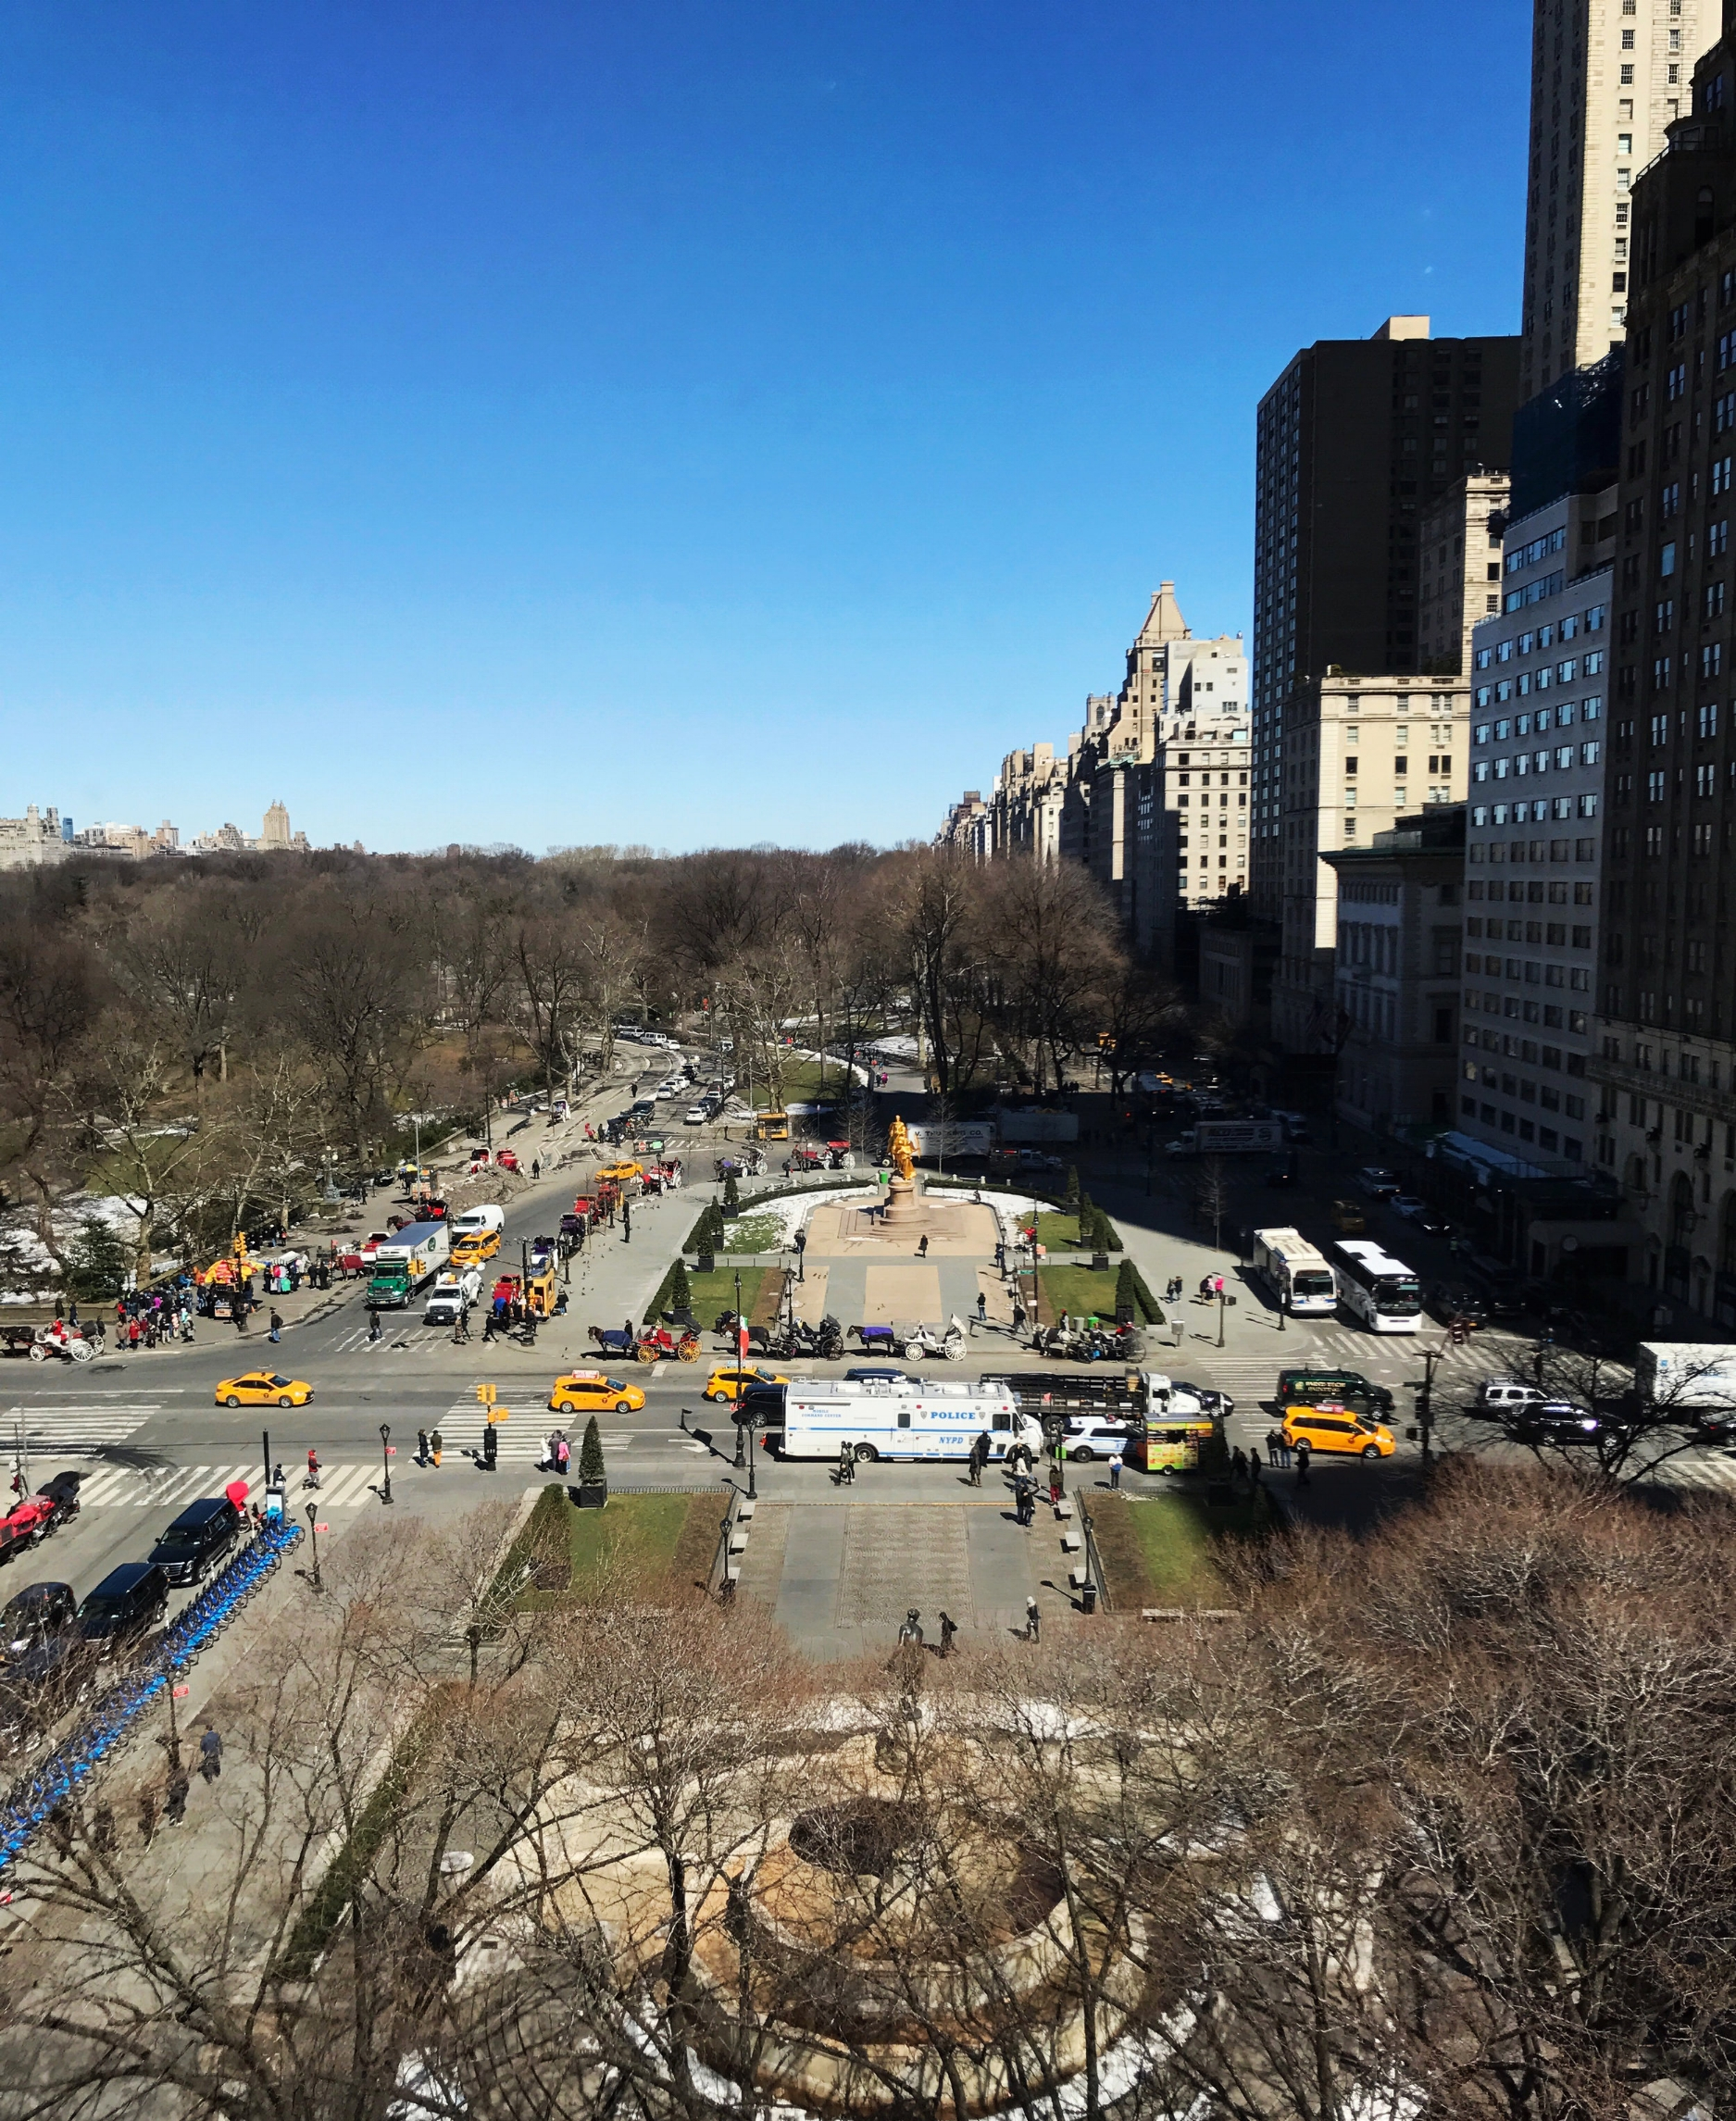 The view over Grand Army Plaza from BG at Bergdorf Goodman.